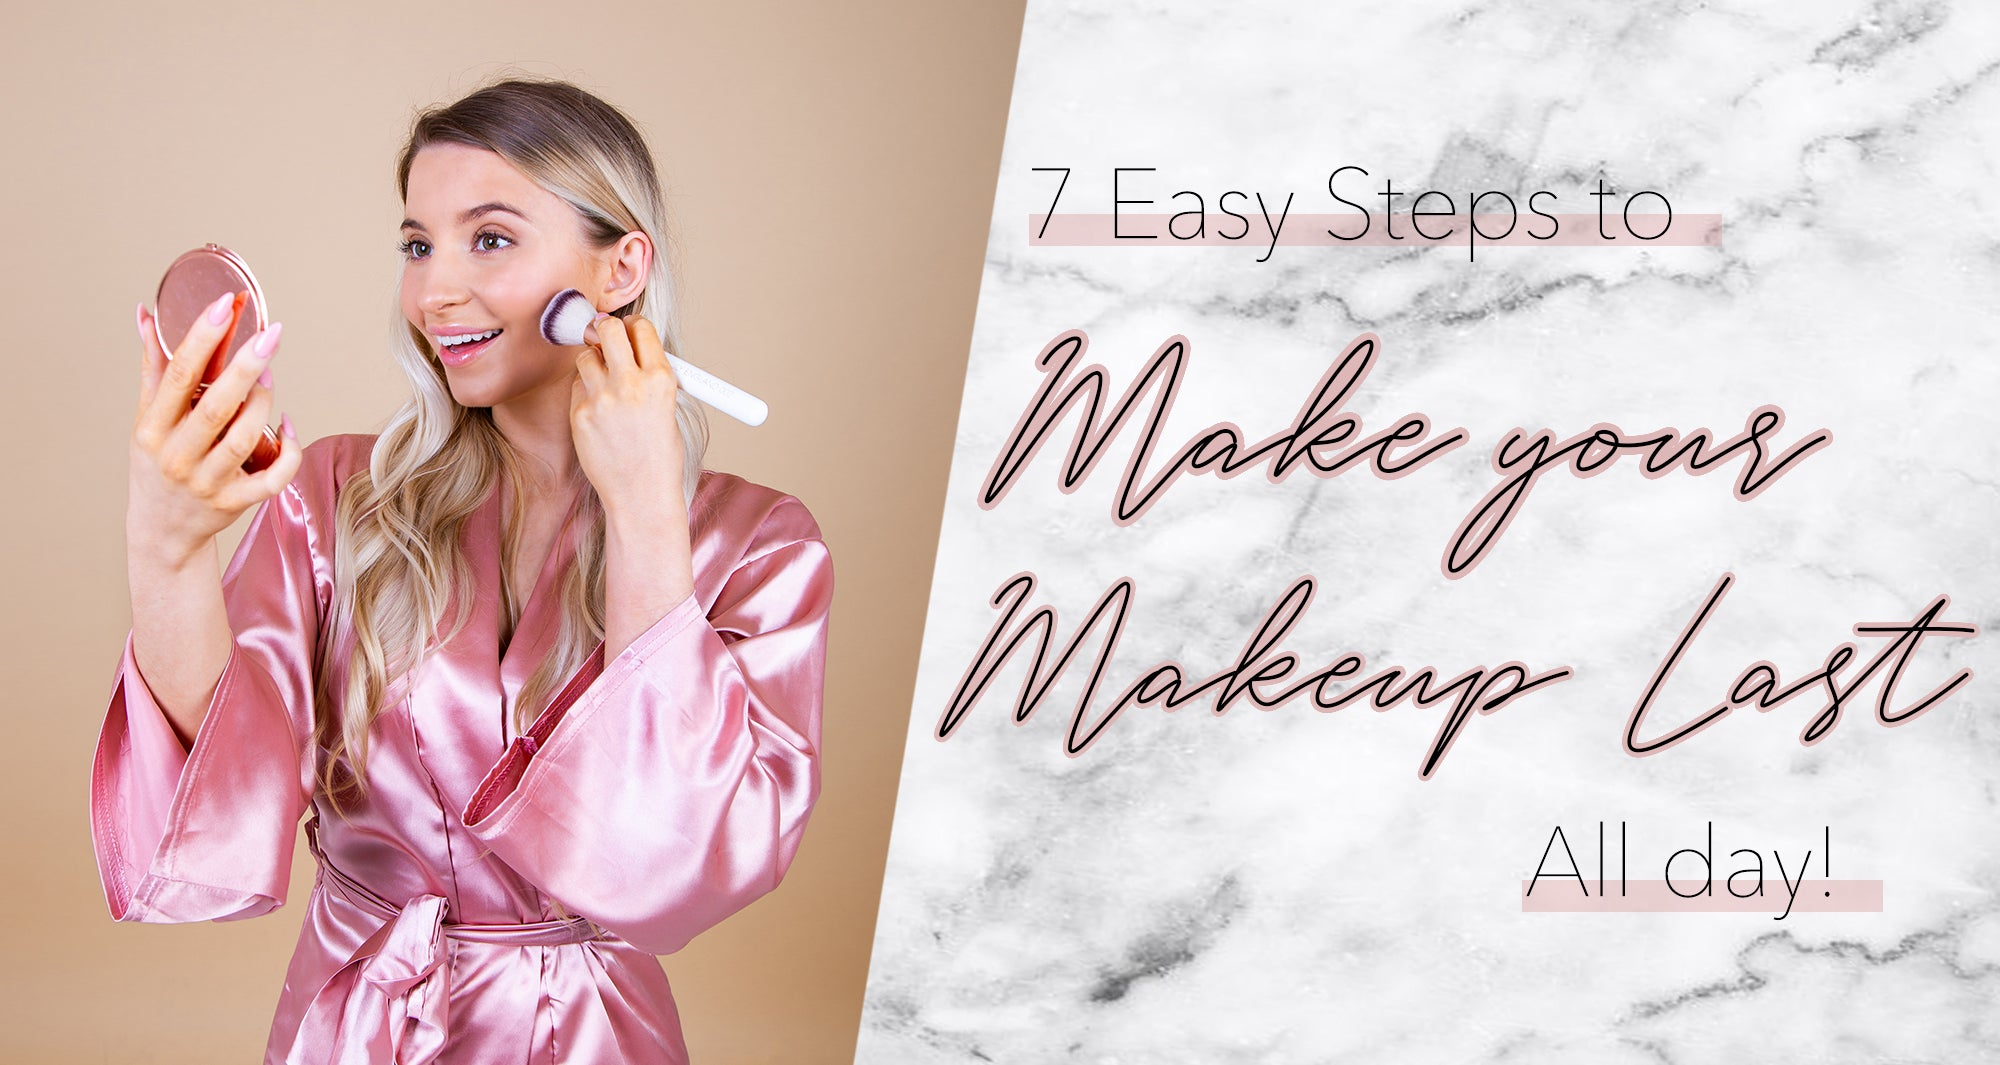 ake your makeup last all day